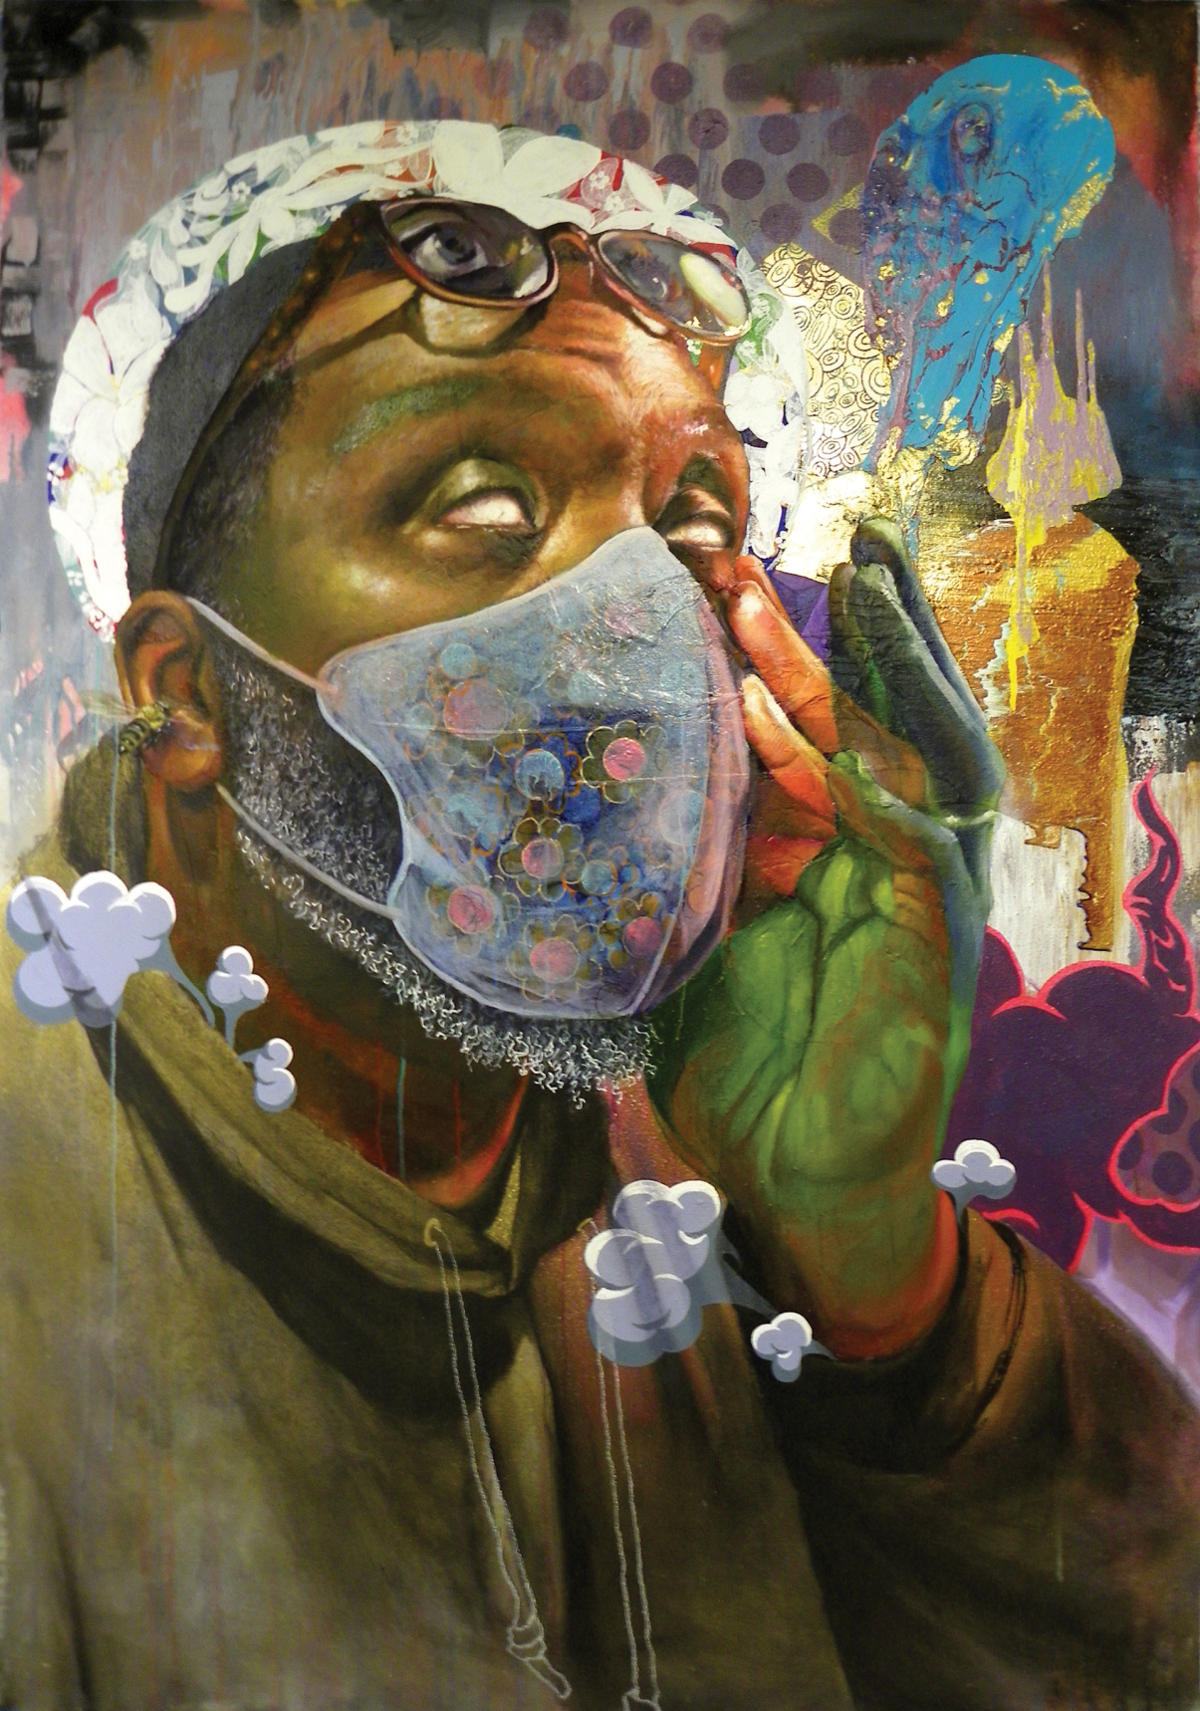 New Paintings by Sam Dunson Examine Black Male Demise